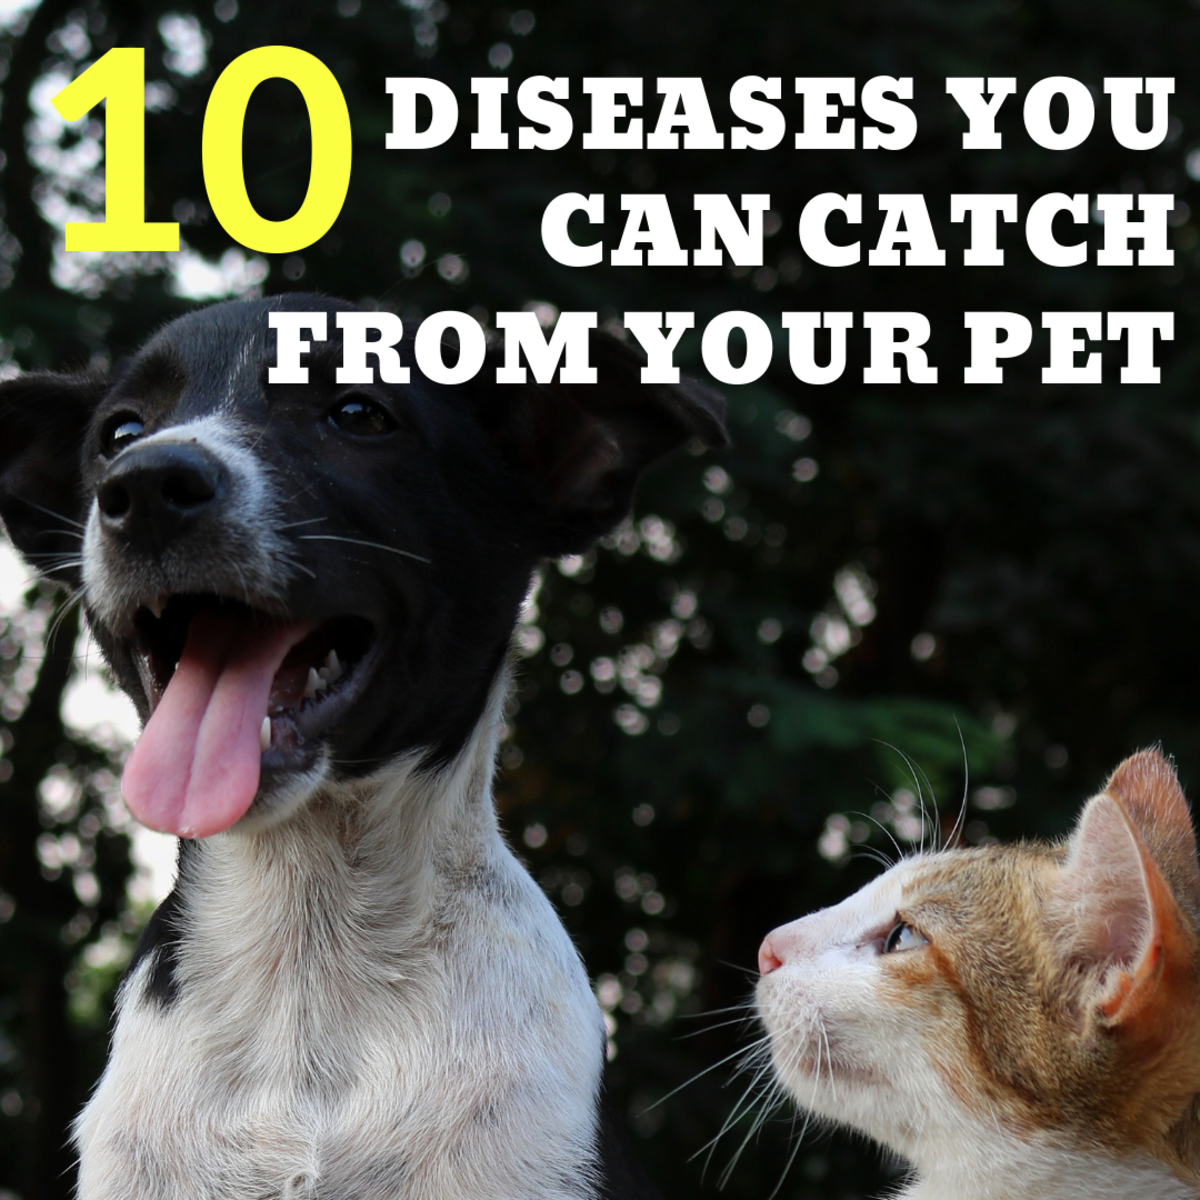 10 Diseases You Can Catch From Your Pets